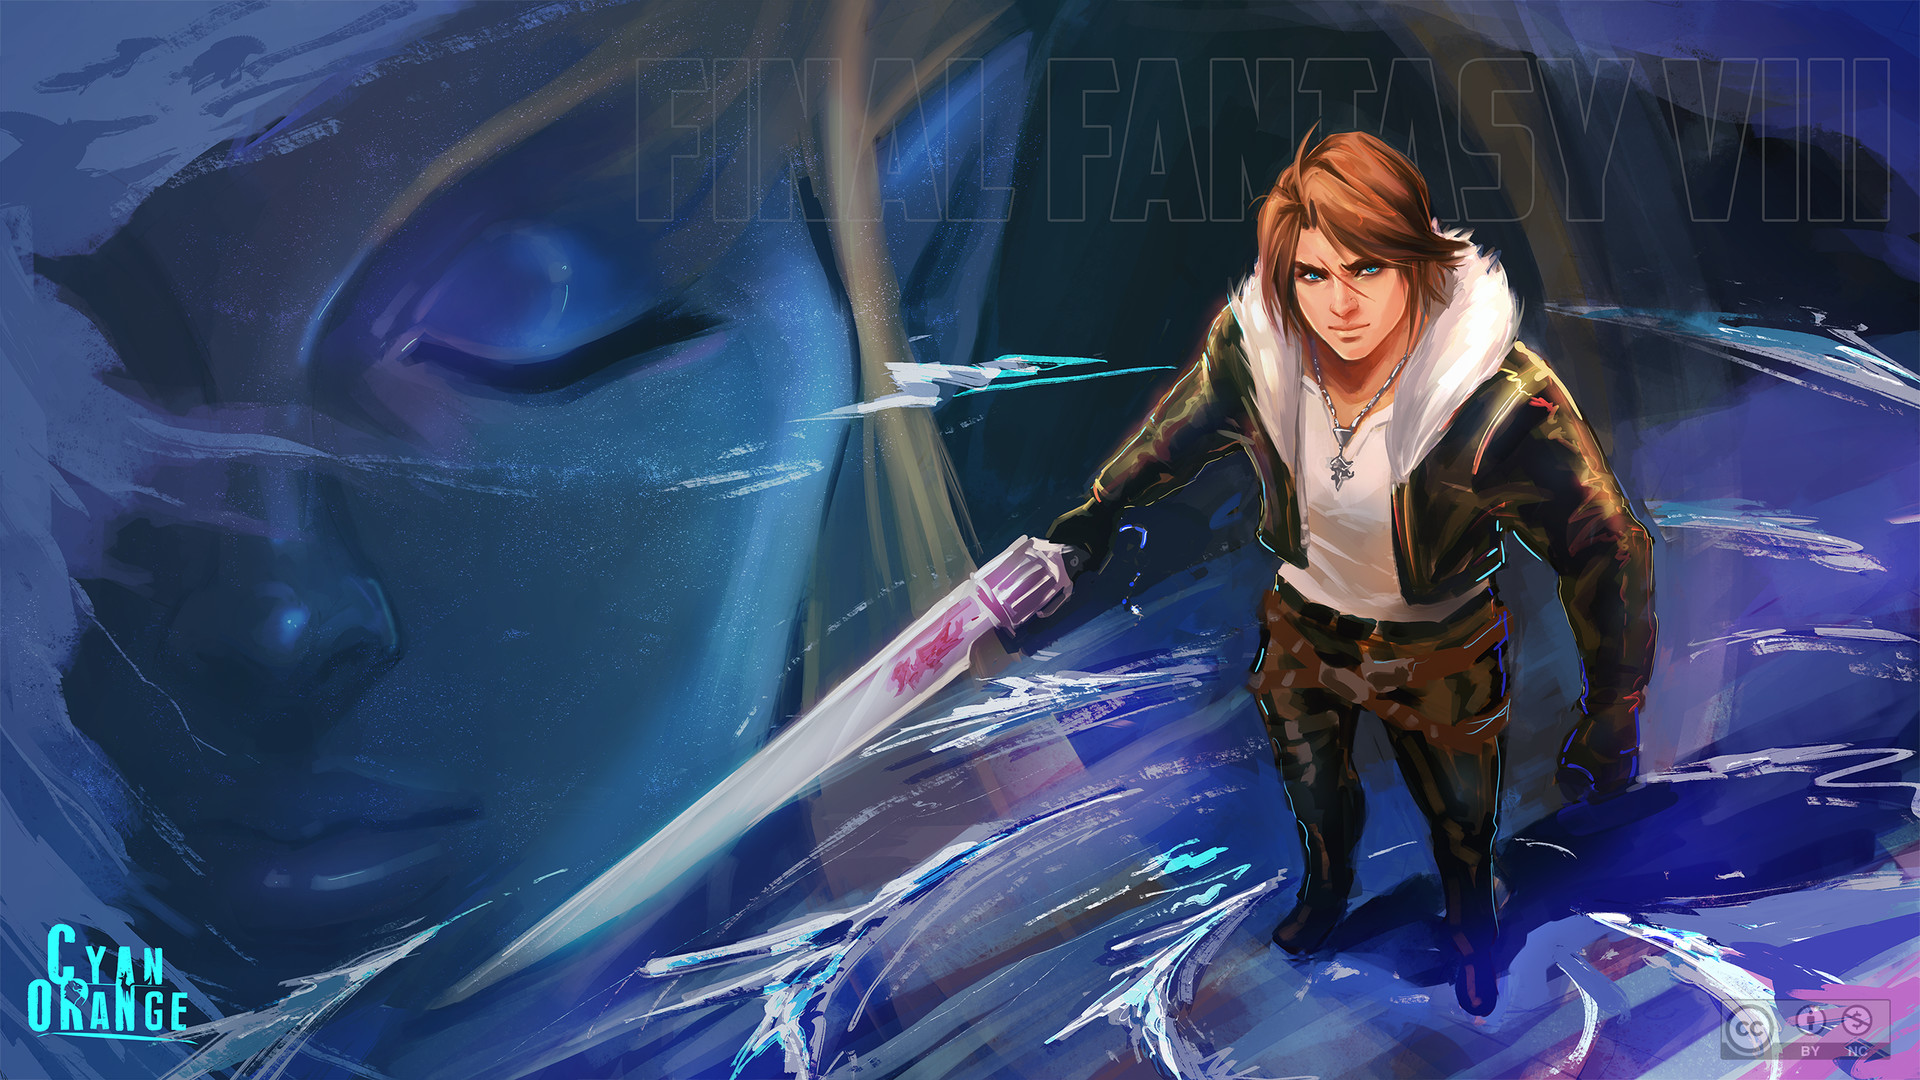 Artstation Squall Shiva Wallpaper Fanart Cyan Orange